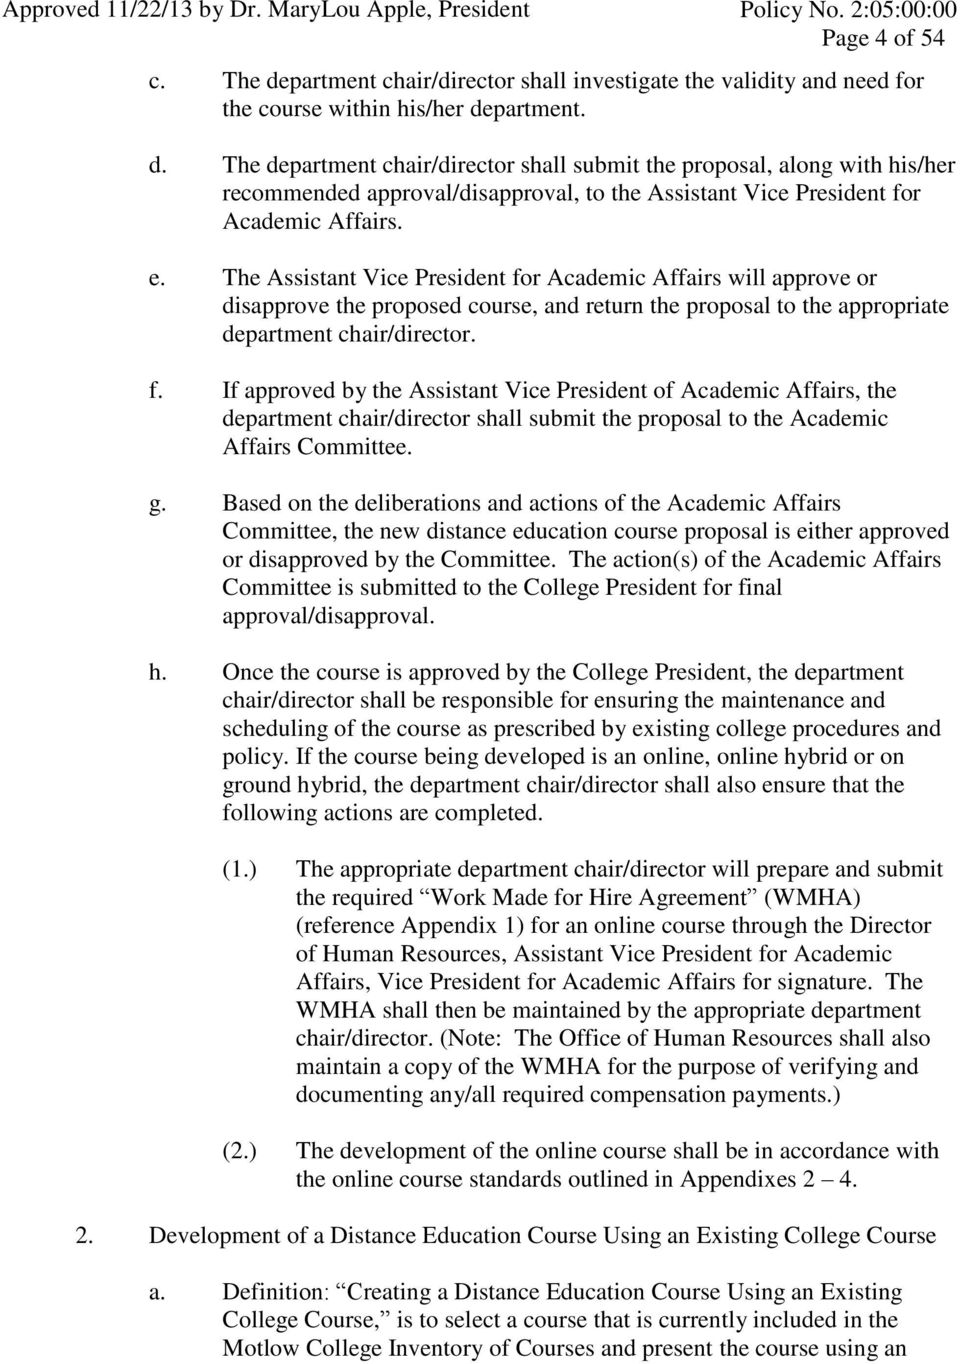 The Assistant Vice President for Academic Affairs will approve or disapprove the proposed course, and return the proposal to the appropriate department chair/director. f. If approved by the Assistant Vice President of Academic Affairs, the department chair/director shall submit the proposal to the Academic Affairs Committee.